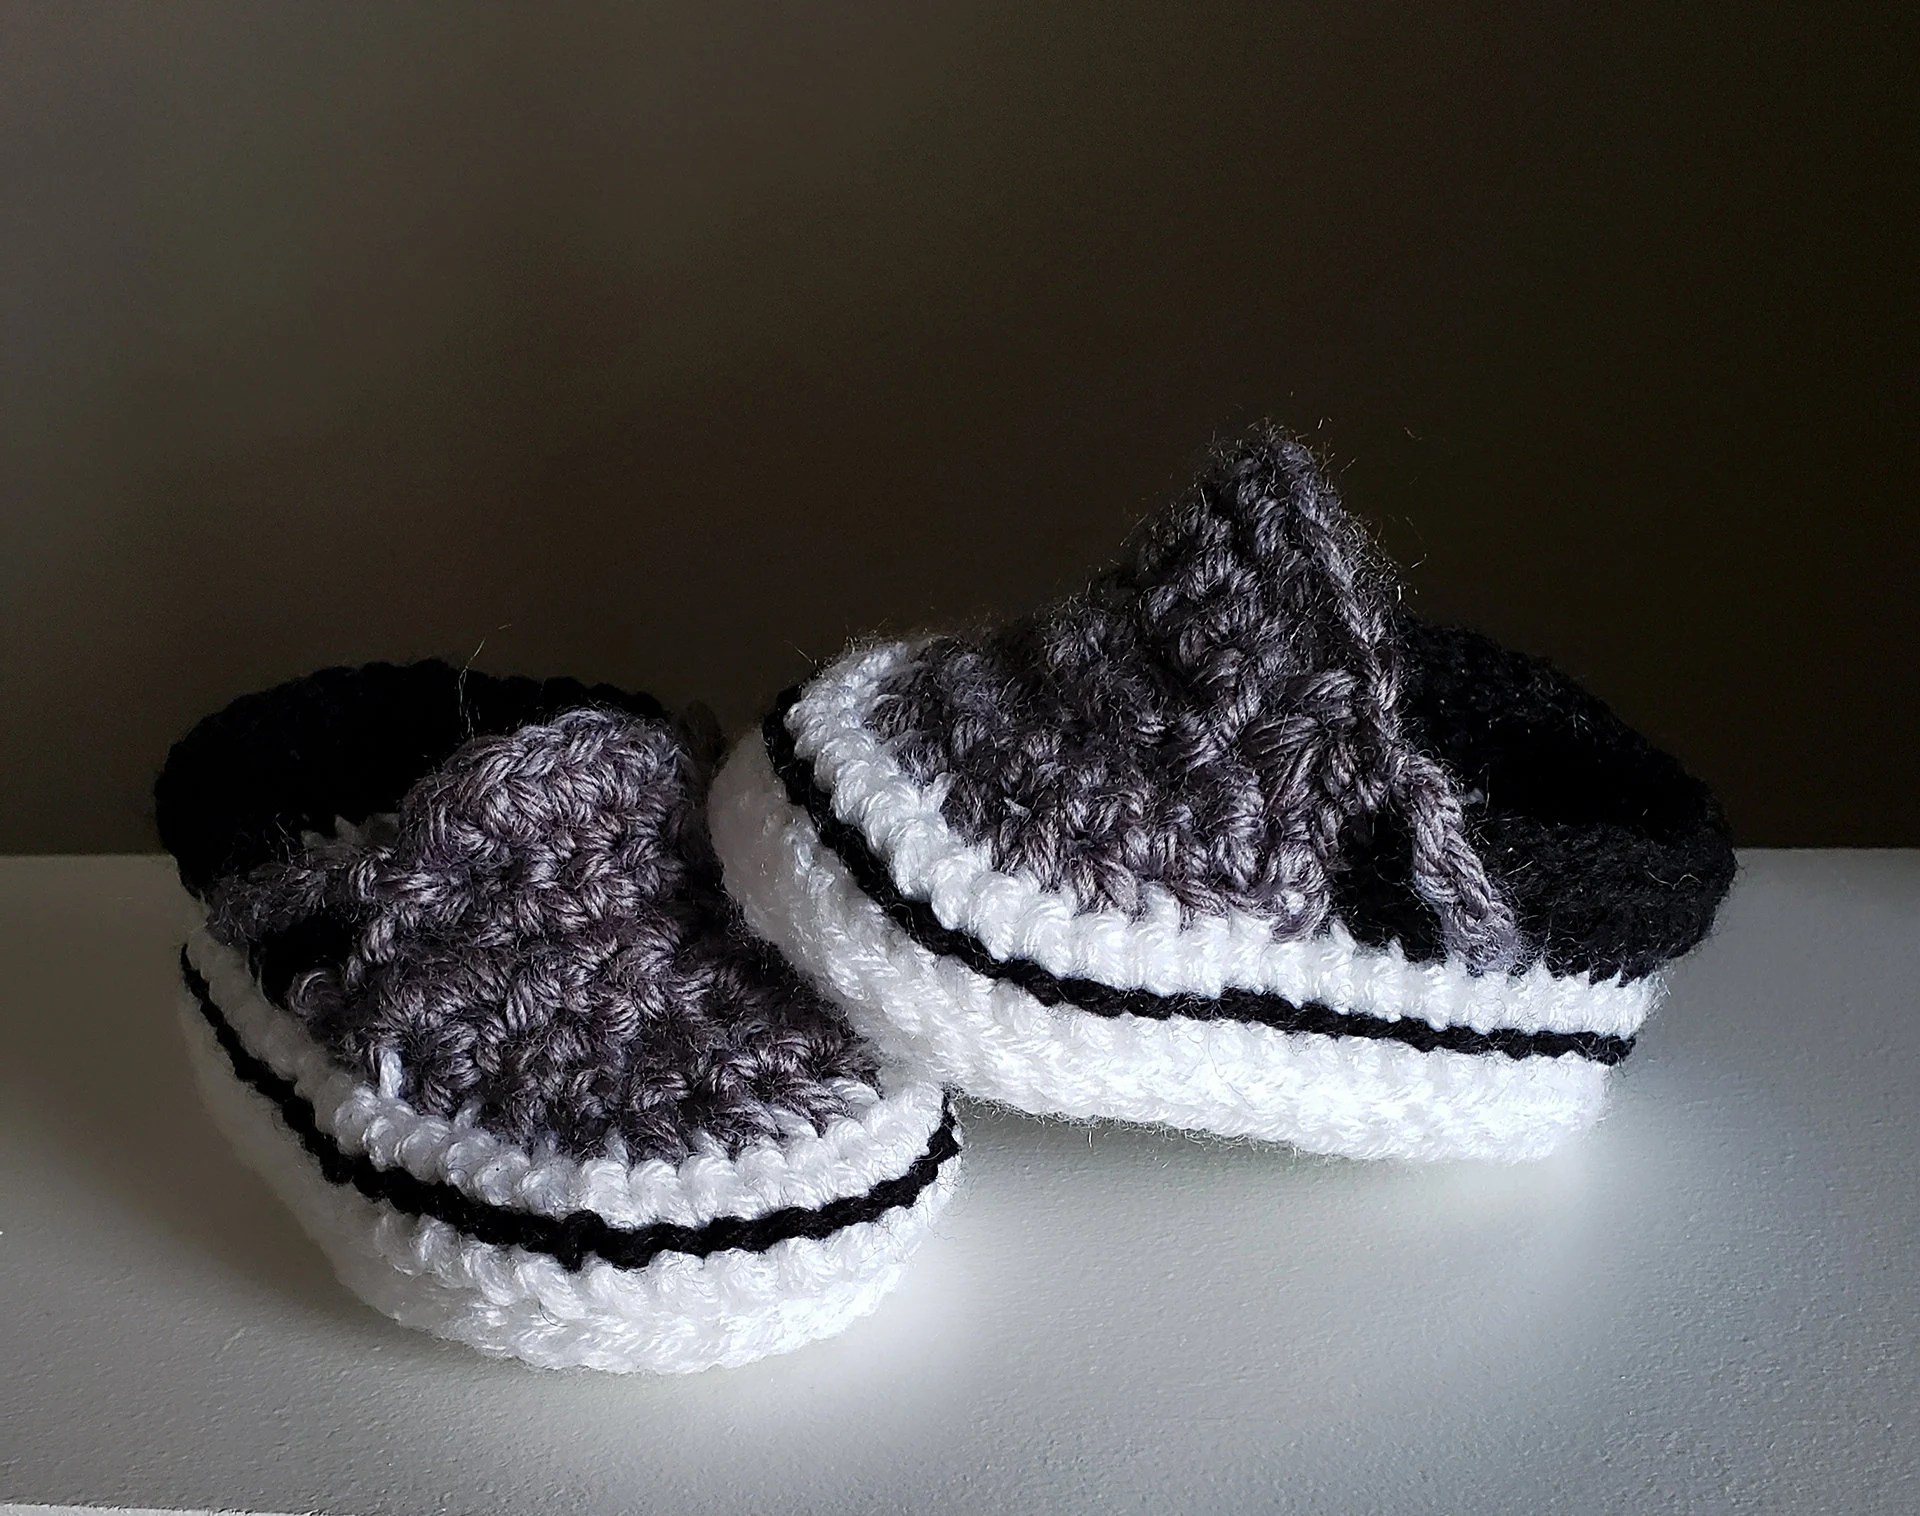 Newborn Shoes Vans Baby Vans Style Crochet Booties Van Infant Newborn Shoes Shower Gift Trendy Present Children Fashion Running Sneakers Handmade